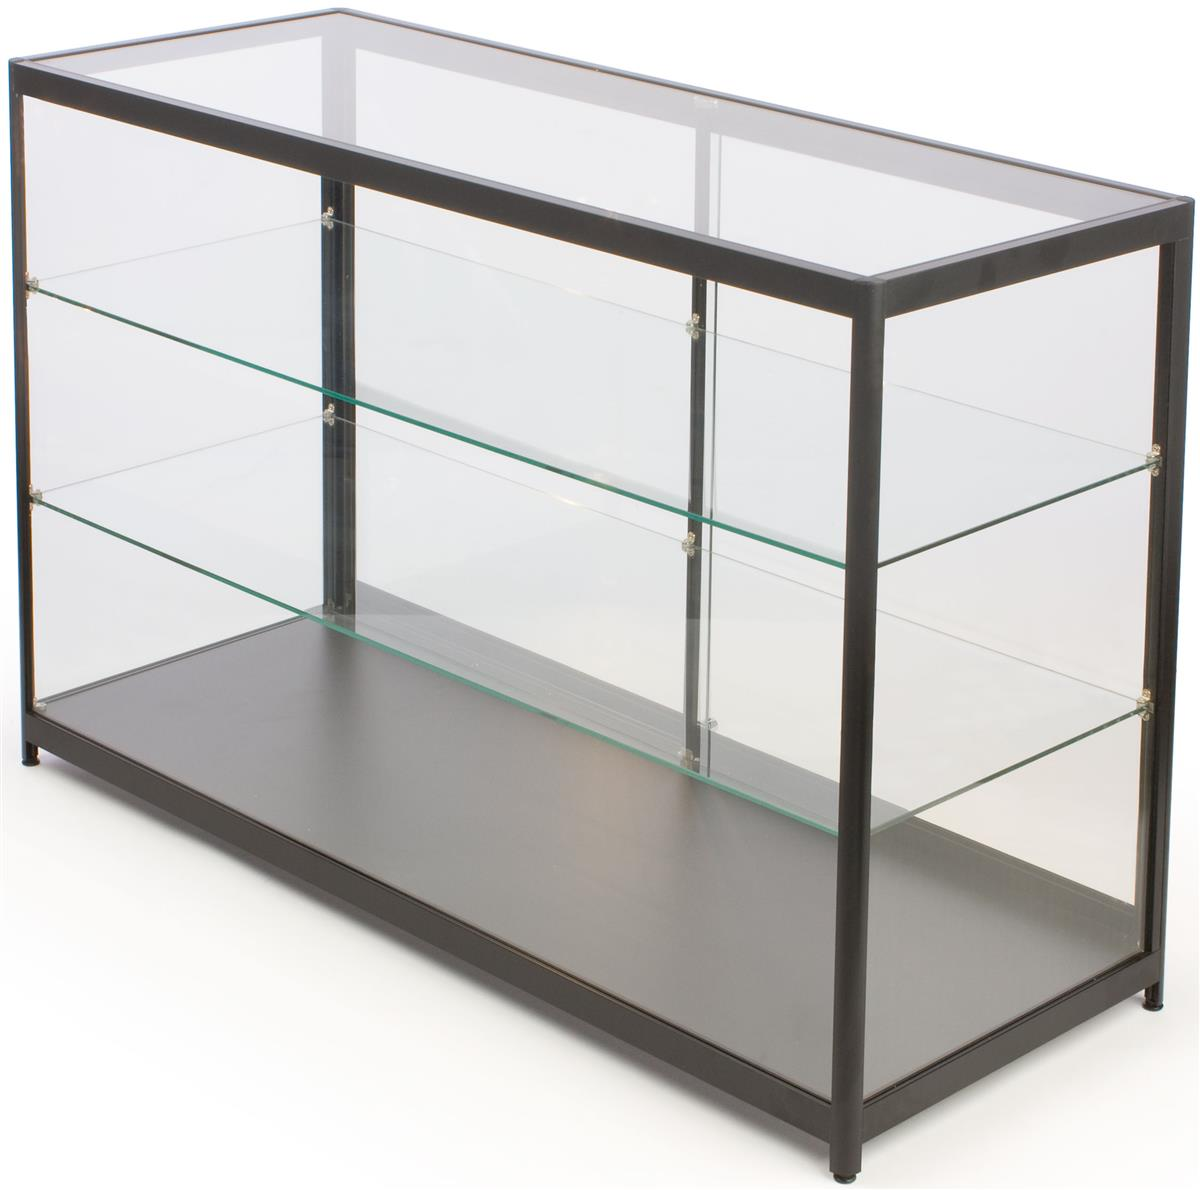 Displays2go Free-Standing Glass Display Case, Framed In B...